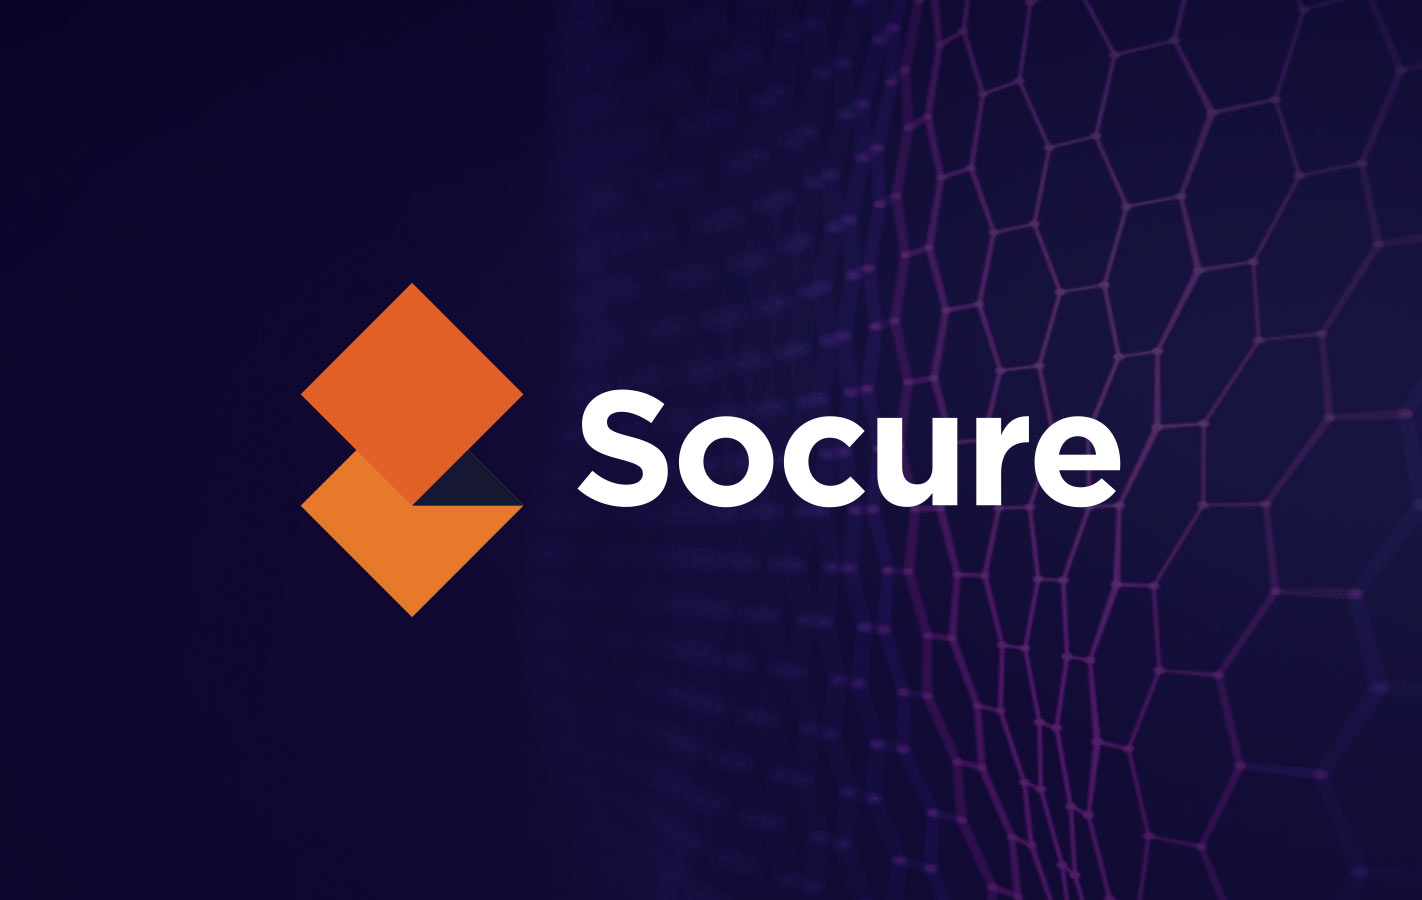 Socure raises $100M at $1.3B